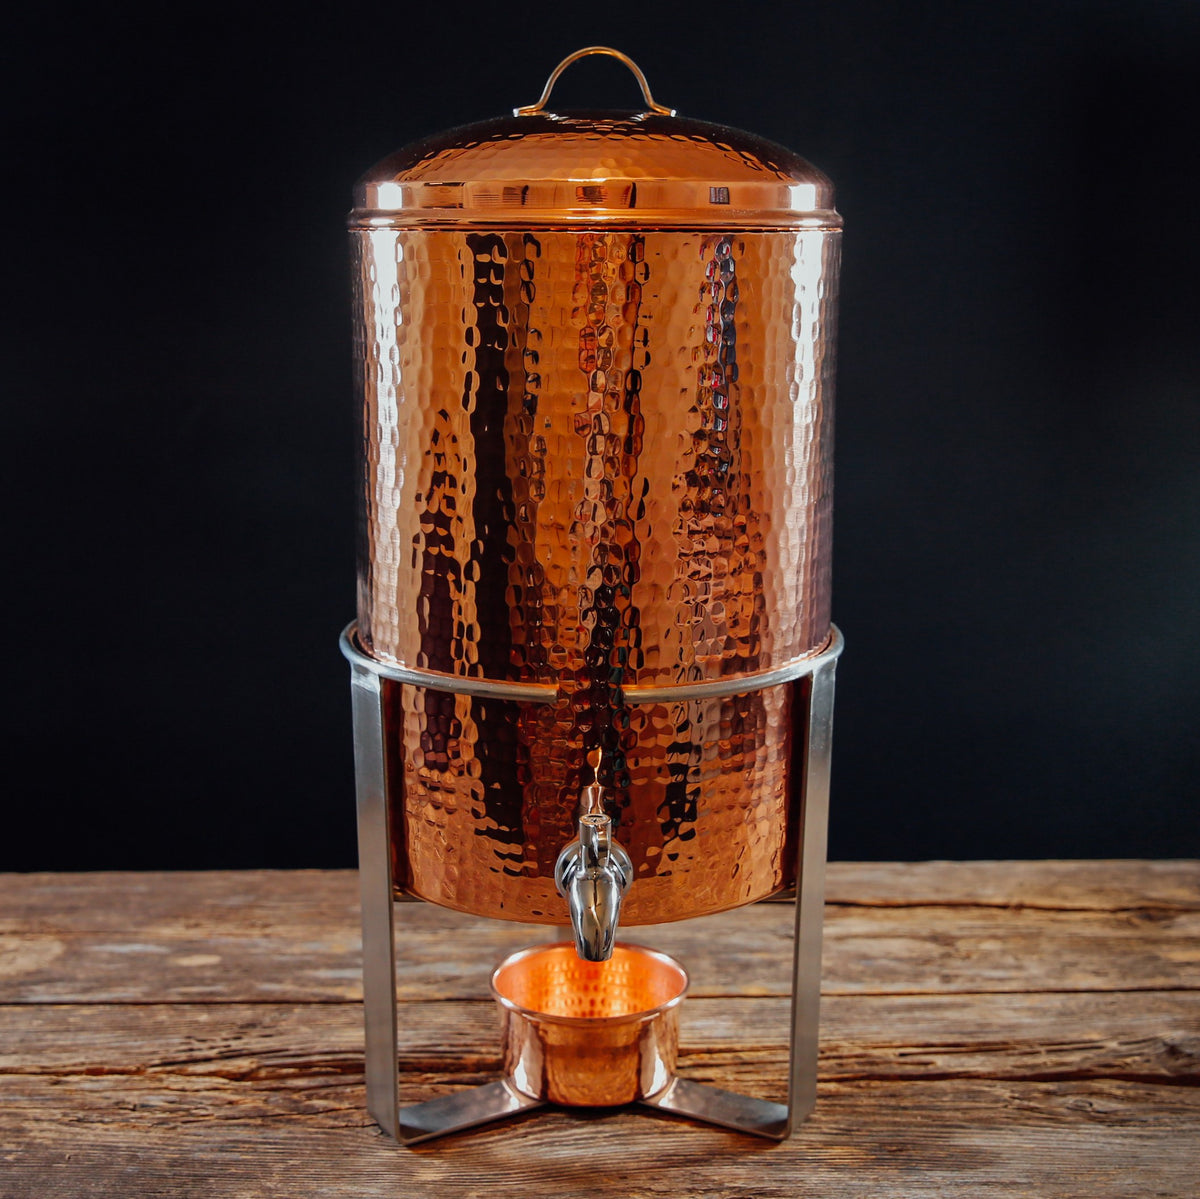 Arcadia Copper Beverage Urn for hot or cold service